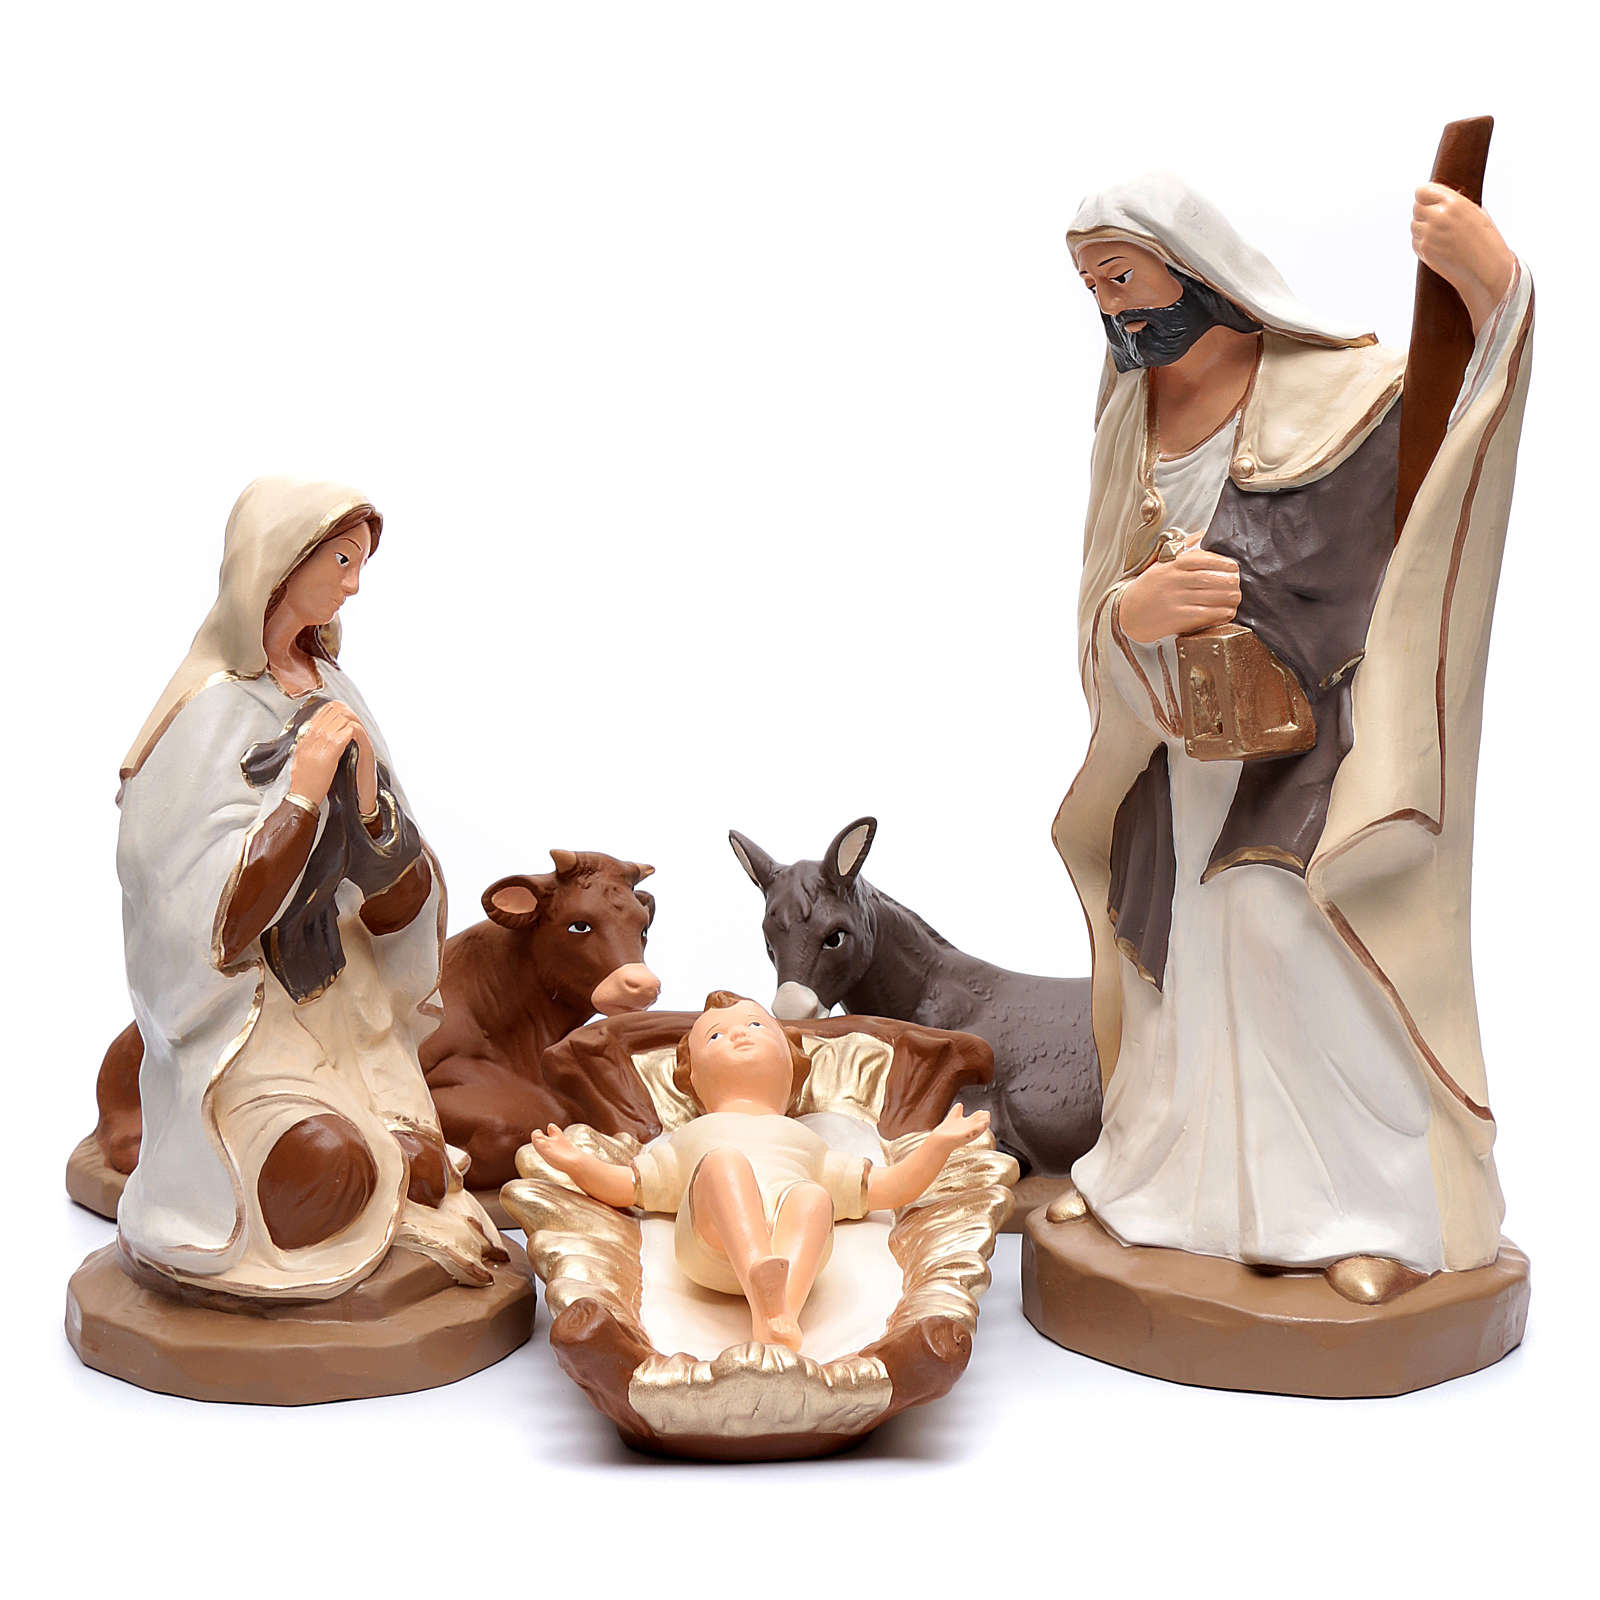 Nativity set in painted clay 5 figurines 50cm, elegant style 4